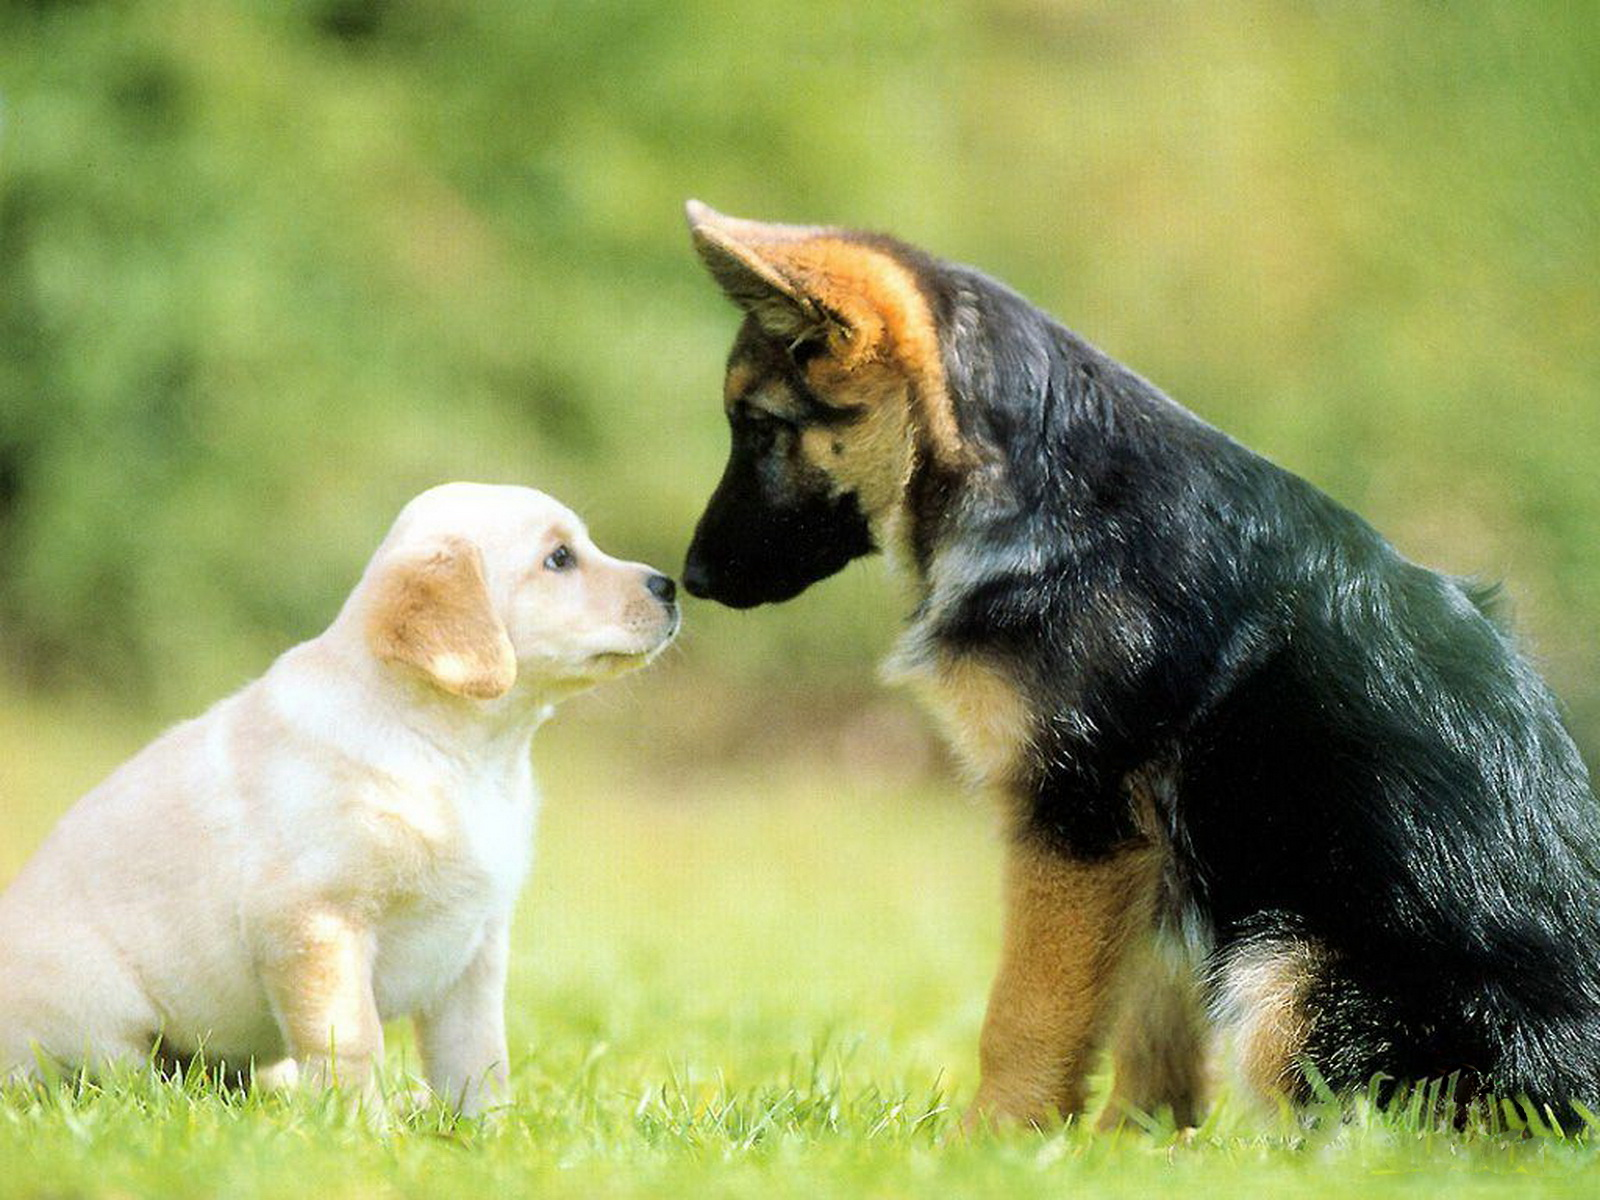 cute dogs care and affection amongst dogs love contrast cute dogs dogs 1600x1200